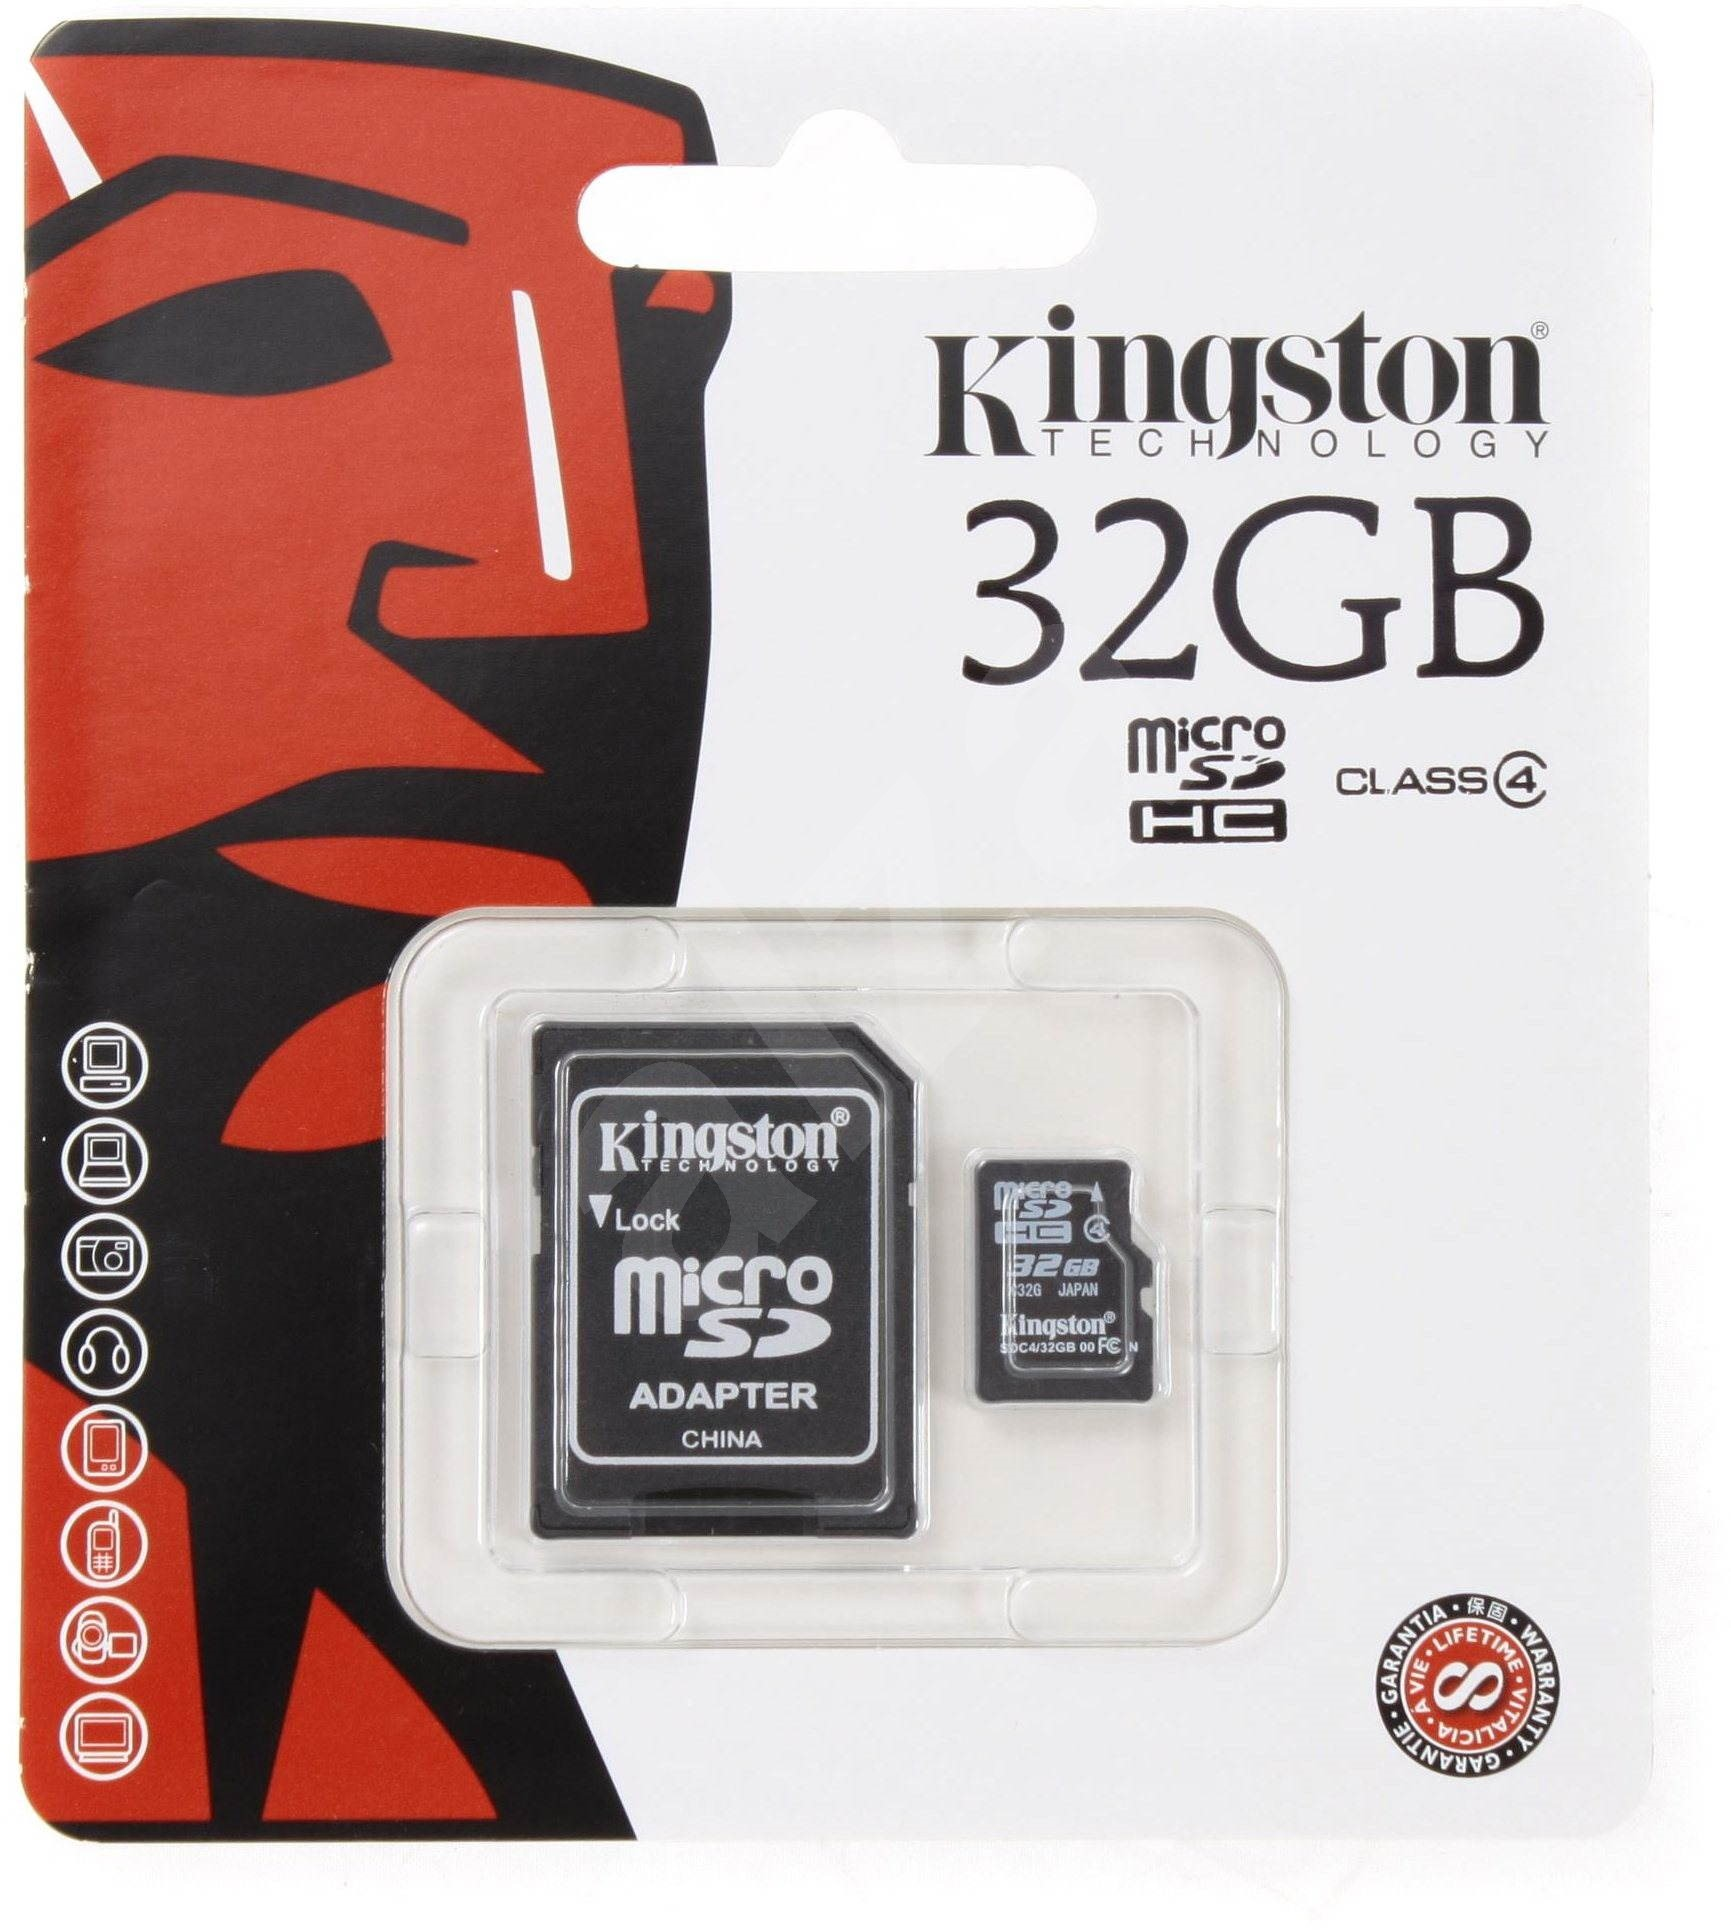 micro kingston 32gb sdhc class 4 sd adapter. Black Bedroom Furniture Sets. Home Design Ideas